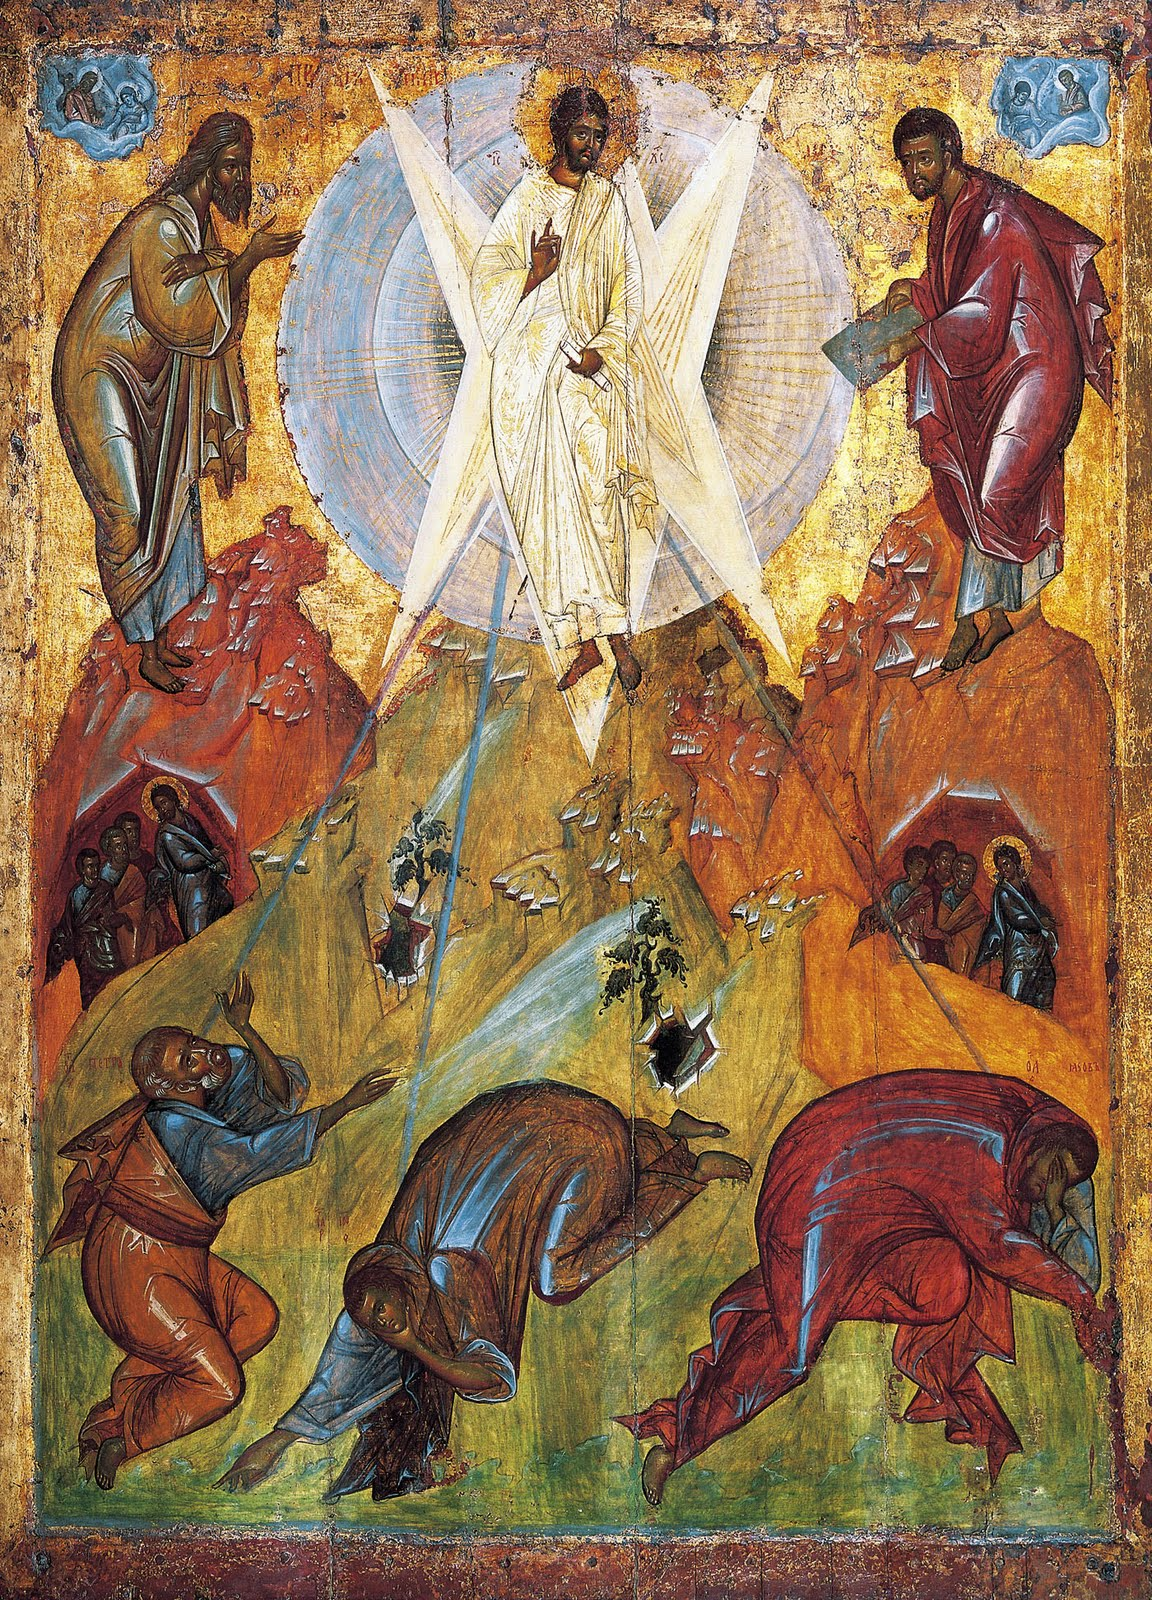 Aug 06 - The Saviour's Transfiguration, an early-15th century icon from the Tretyakov Gallery, attributed to Theophanes the Greek